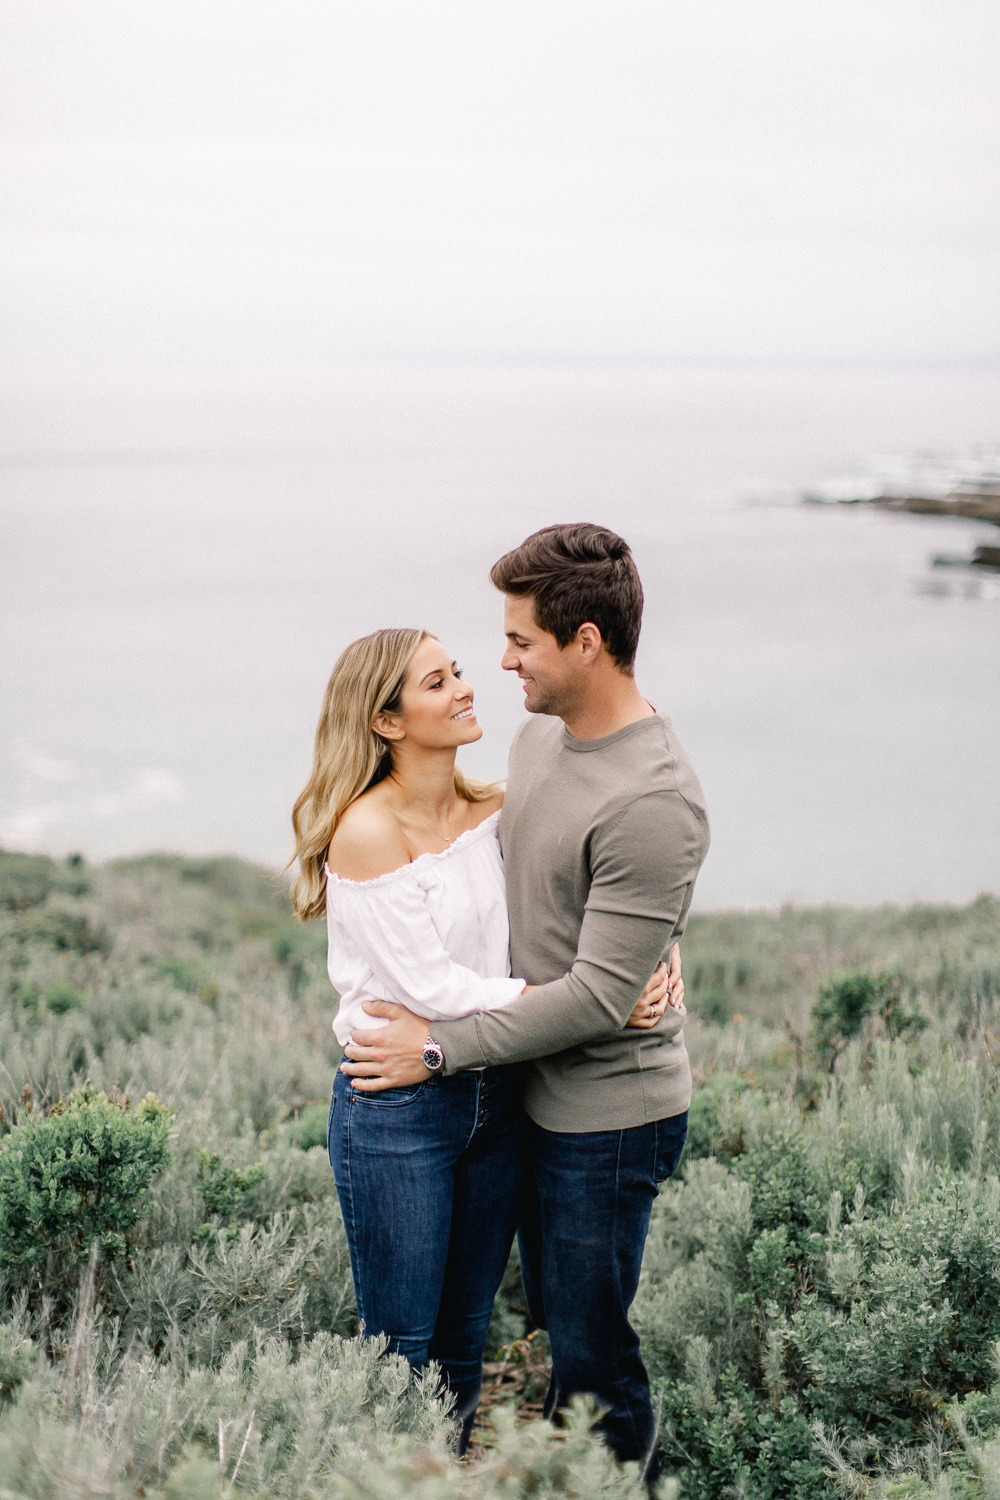 Ashley-Rae-Studio-San-Luis-Obispo-Engagement-Session-Santa-Barbara-Wedding-Photographer-165.jpg